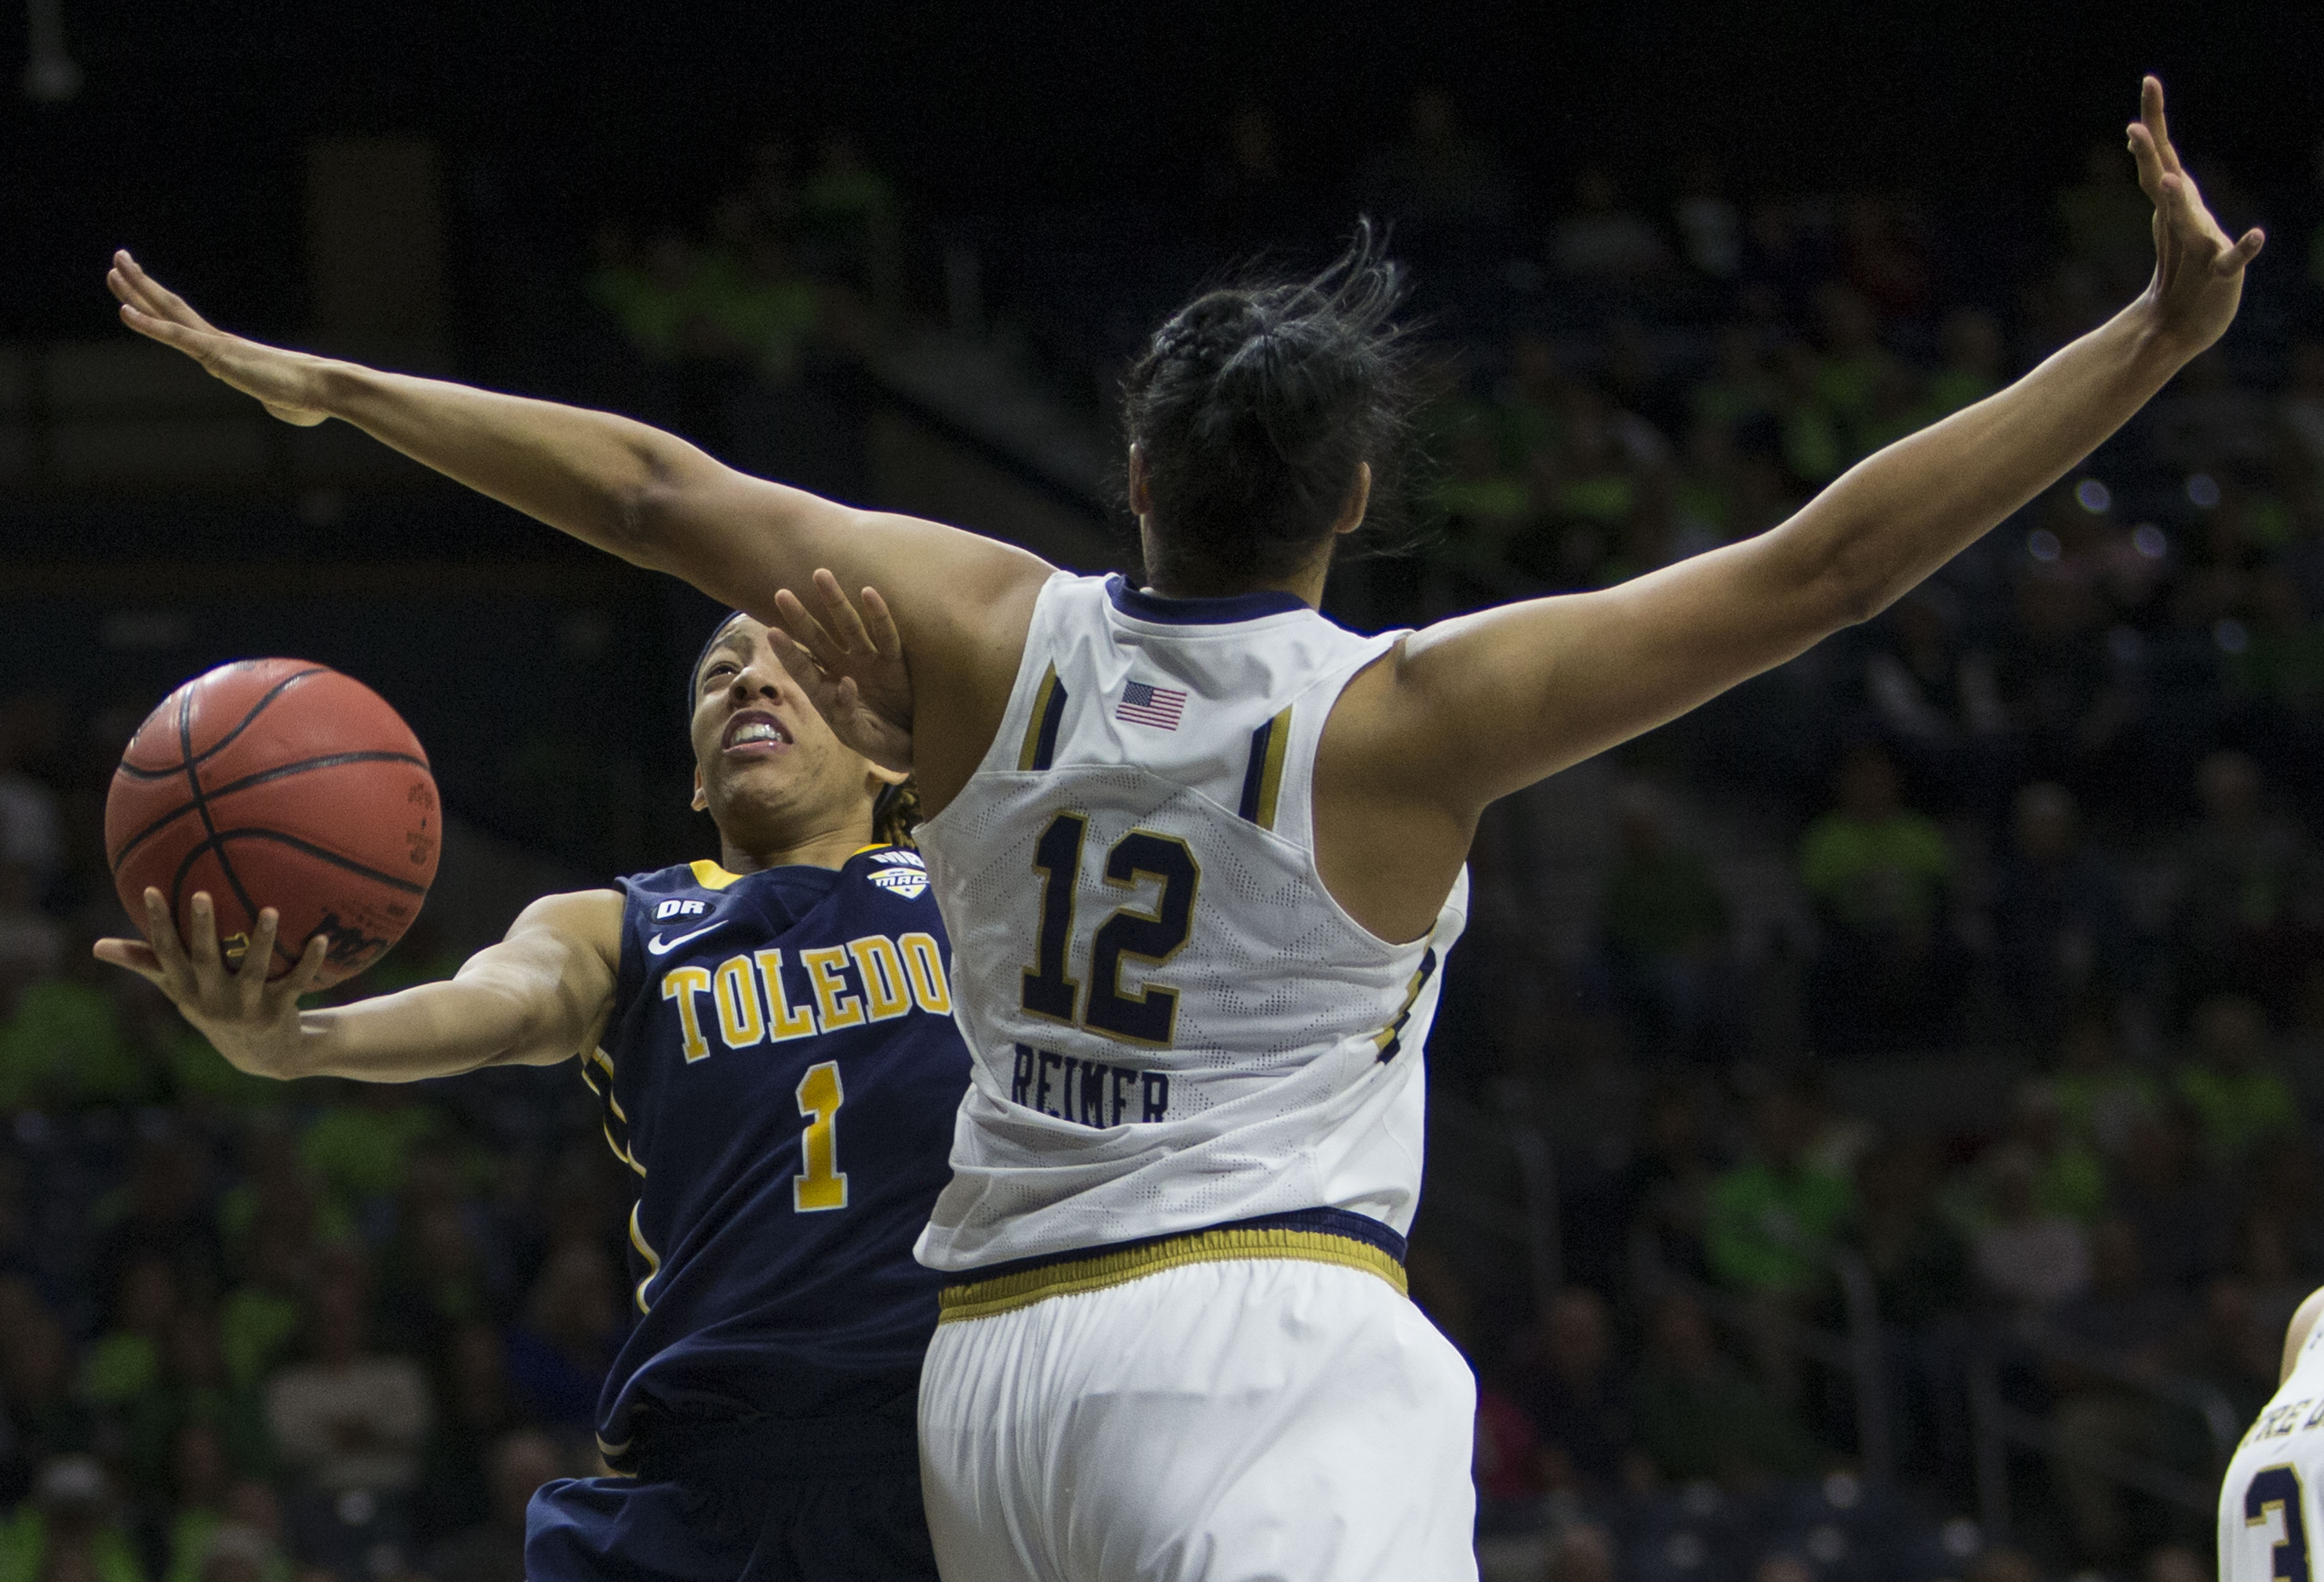 Toledo's BrenaeHarris (1) goes up for a shot as Notre Dame's Taya Reimer (12) defends in the first half of an NCAA college basketball game in South Bend, Ind., Wednesday, Nov. 18, 2015.  (AP Photo/Robert Franklin)